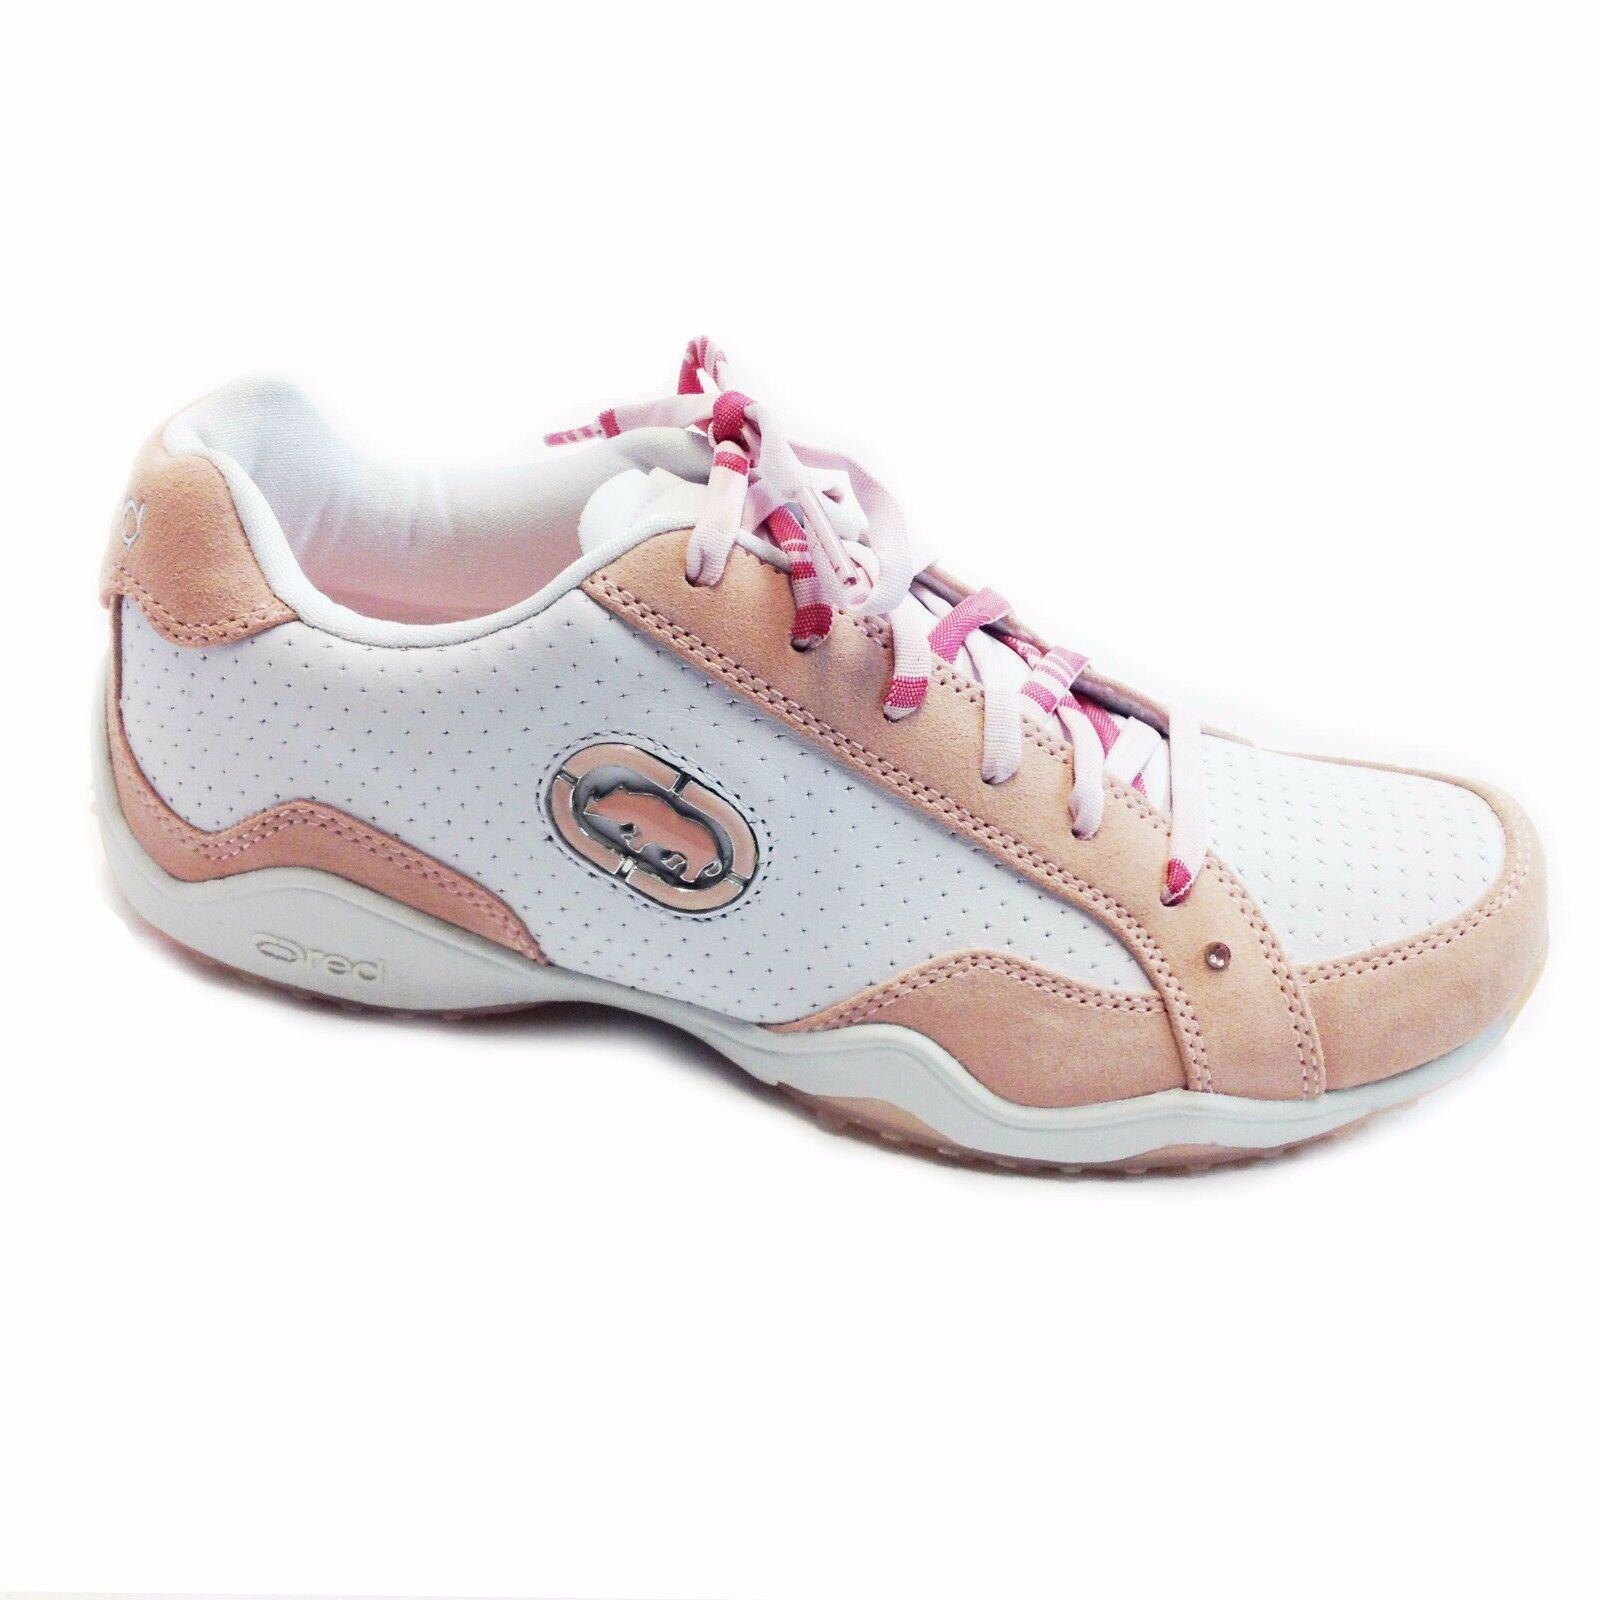 Women Ecko Red shoes WHITE  PINK CAMEO STYLE 26006 SIZE6-10